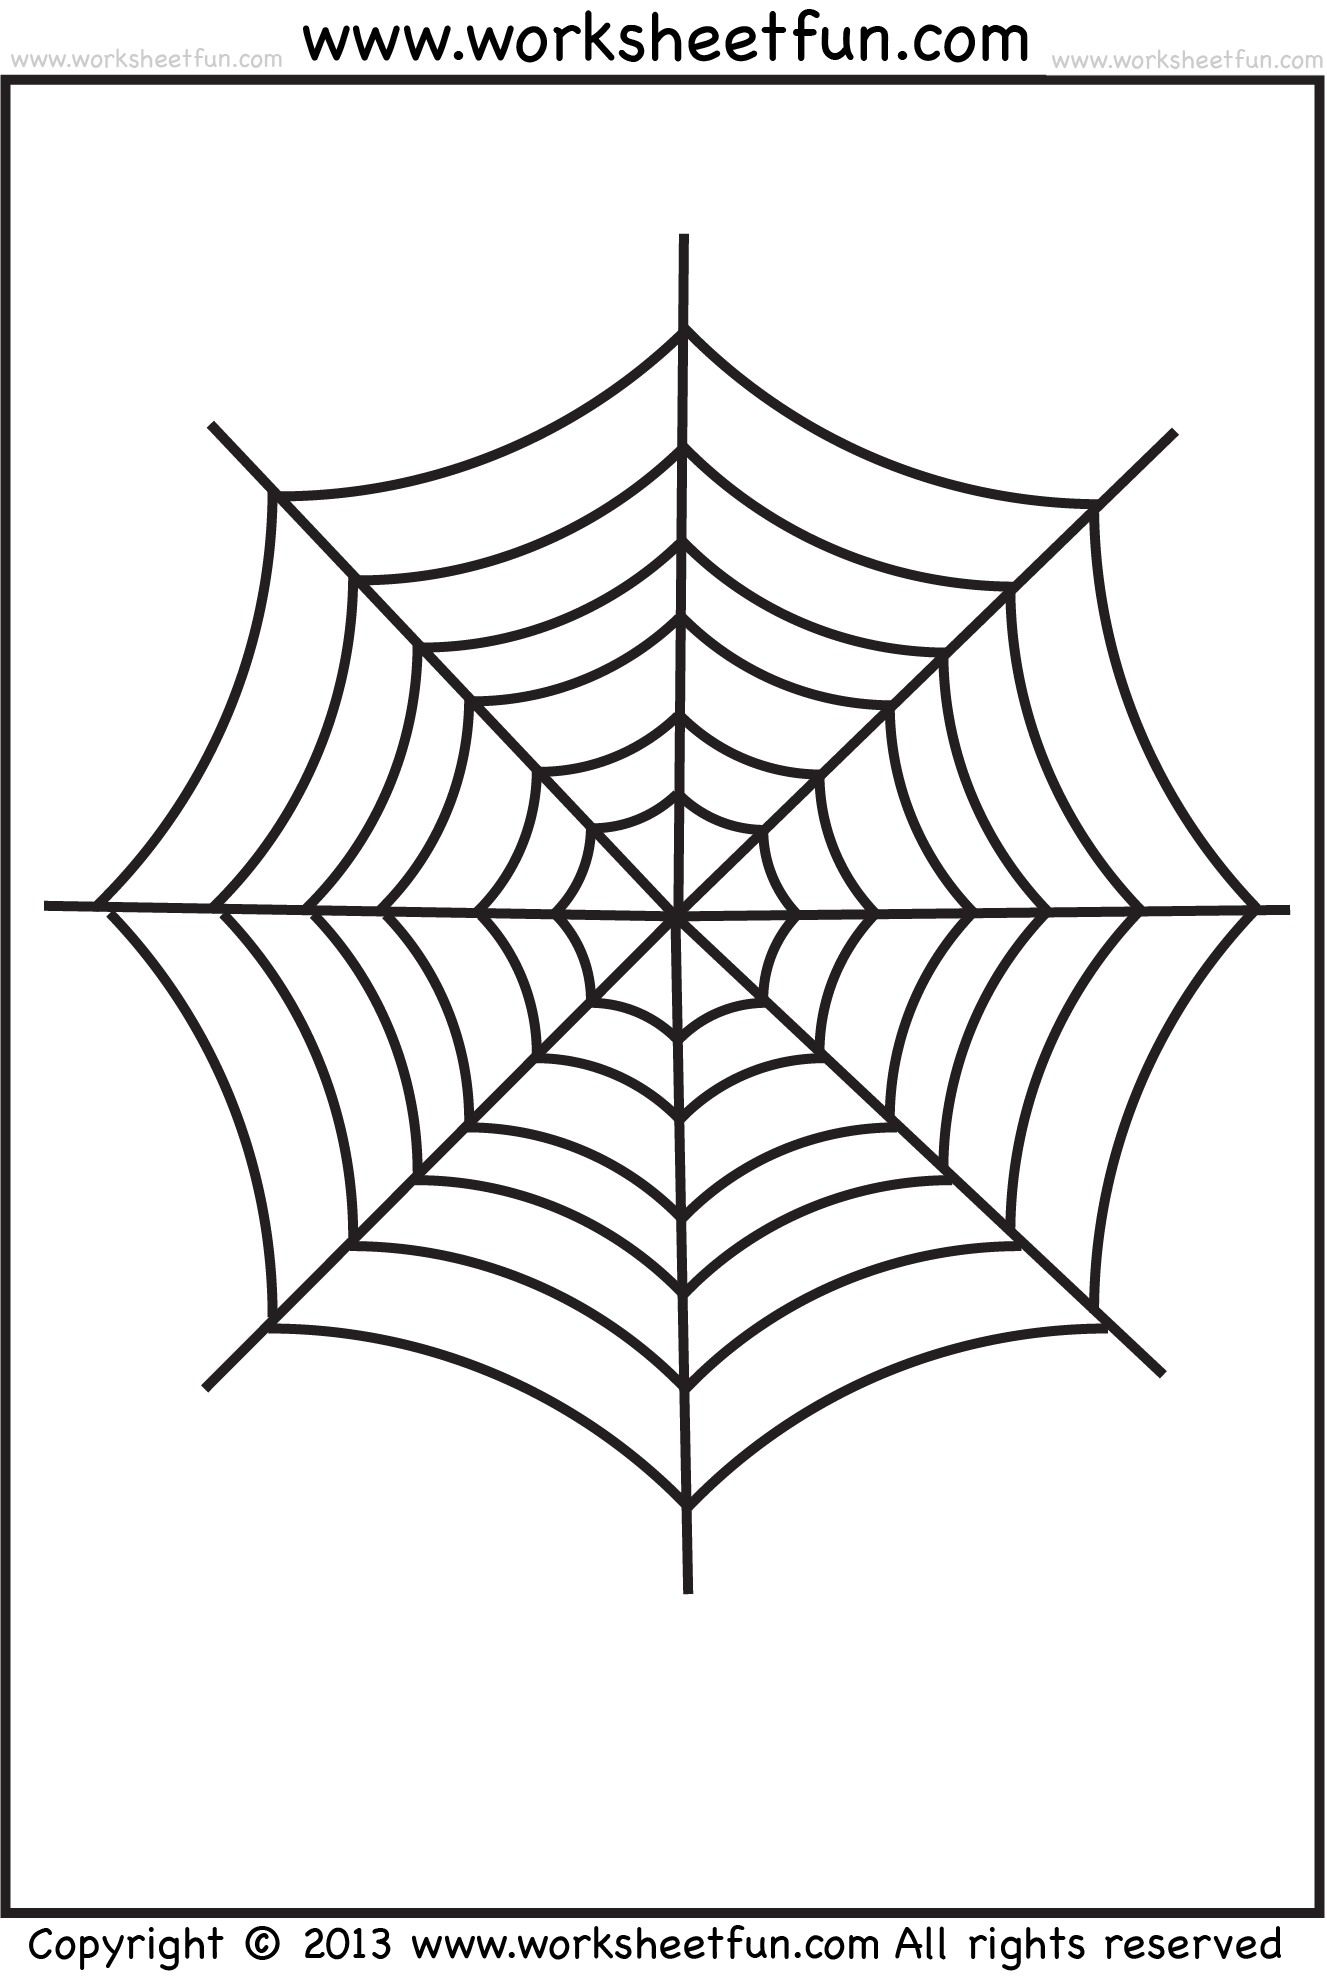 Spider Web Tracing And Coloring 2 Halloween Worksheets Free Printable Worksheets Halloween Worksheets Halloween Worksheets Free Halloween Preschool [ 1982 x 1327 Pixel ]